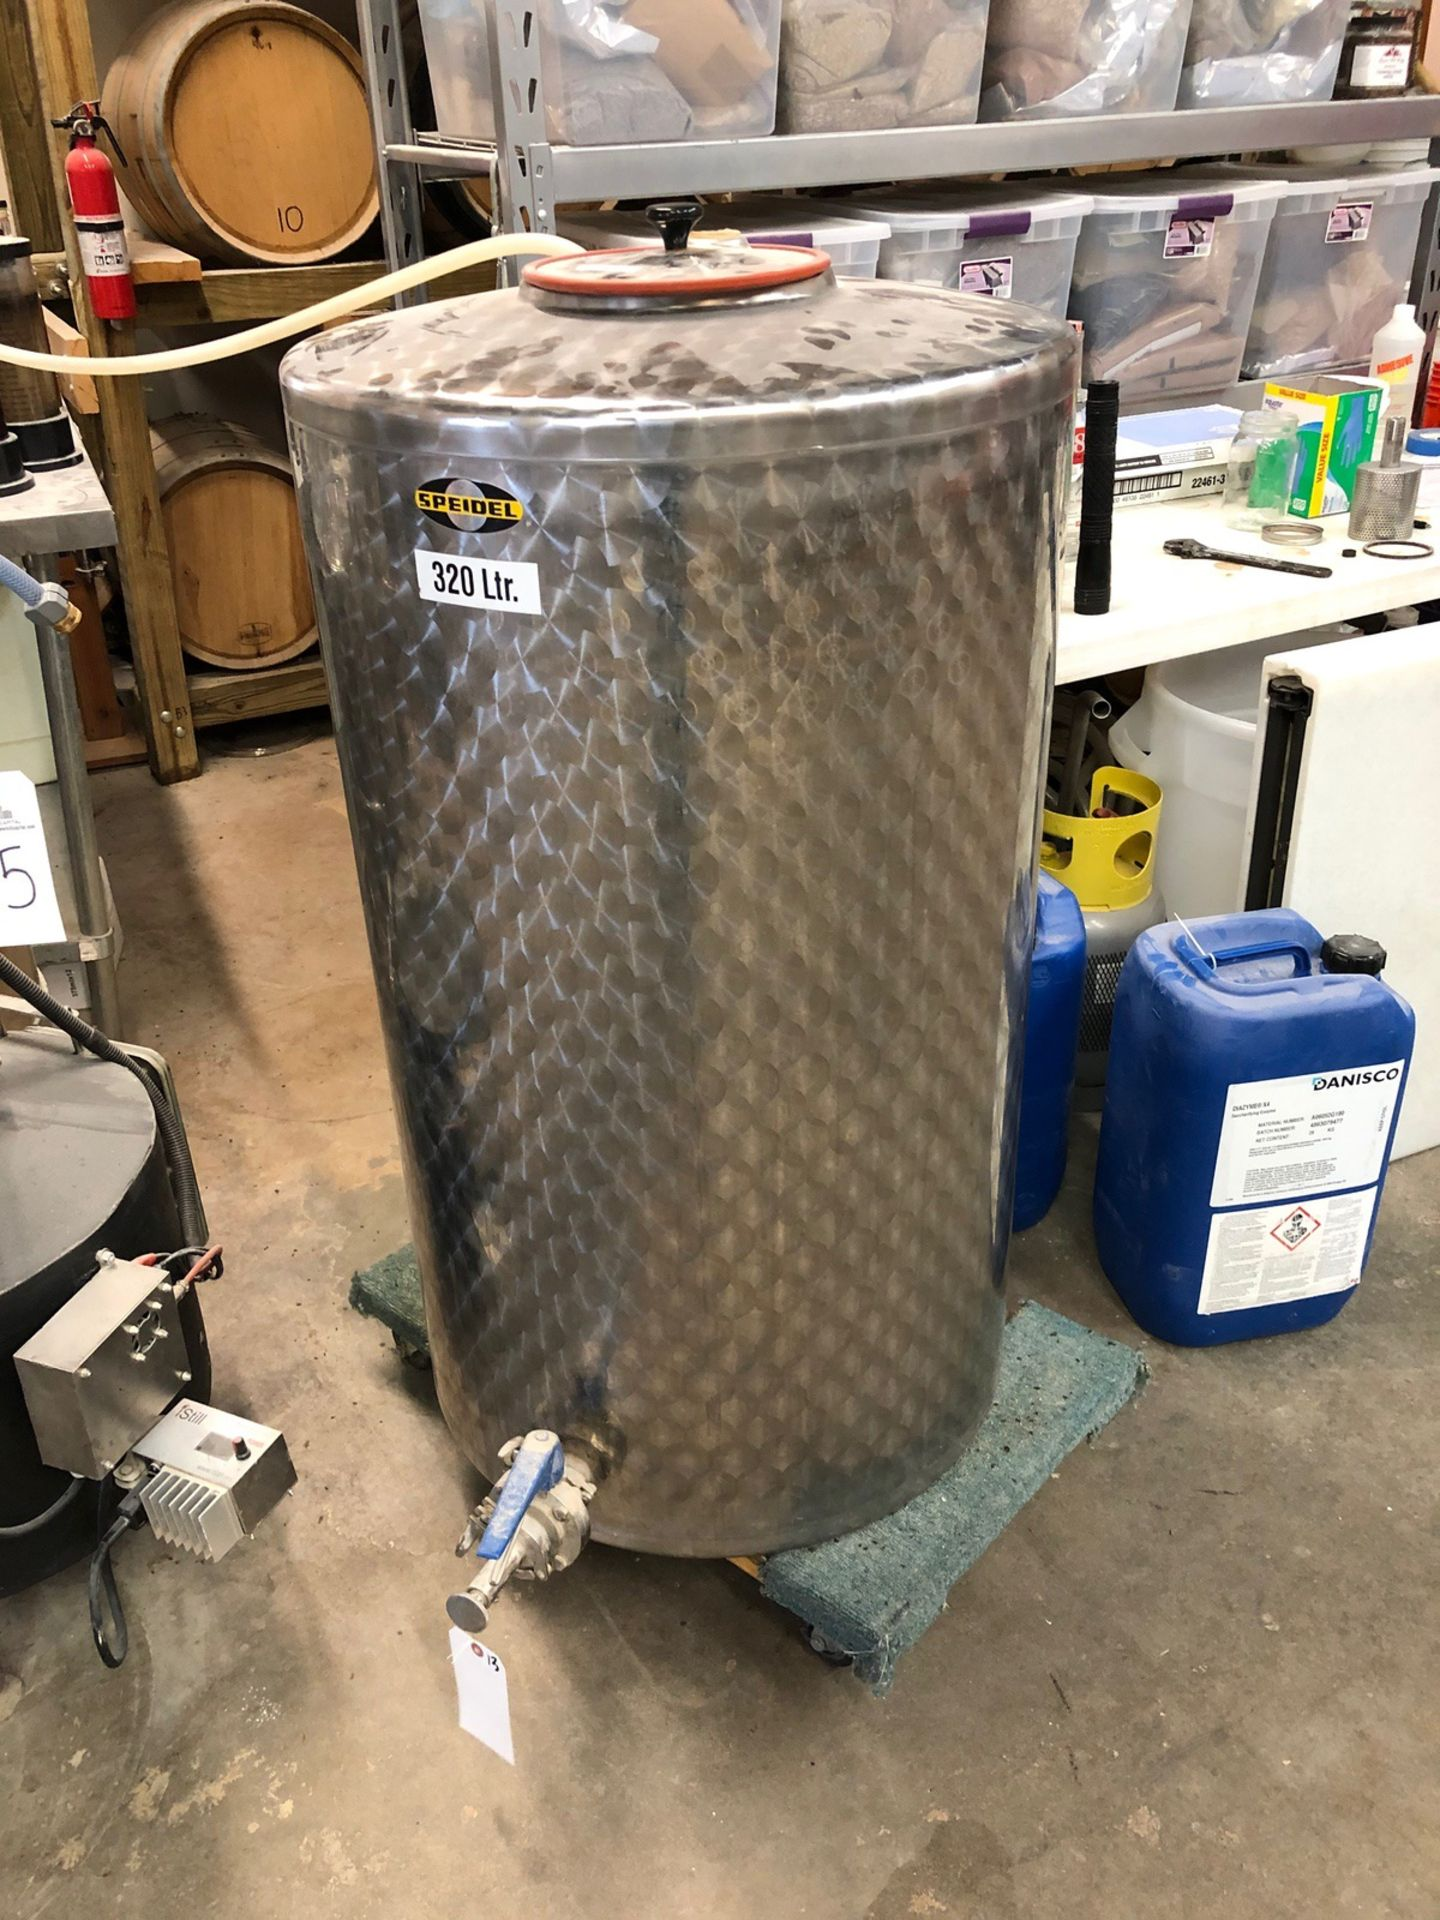 Lot 13 - Speidel 320L Stainless Steel Holding Tank, Approx 45in OAH x 26in OD | Sub to Bulk | Rig Fee: $75